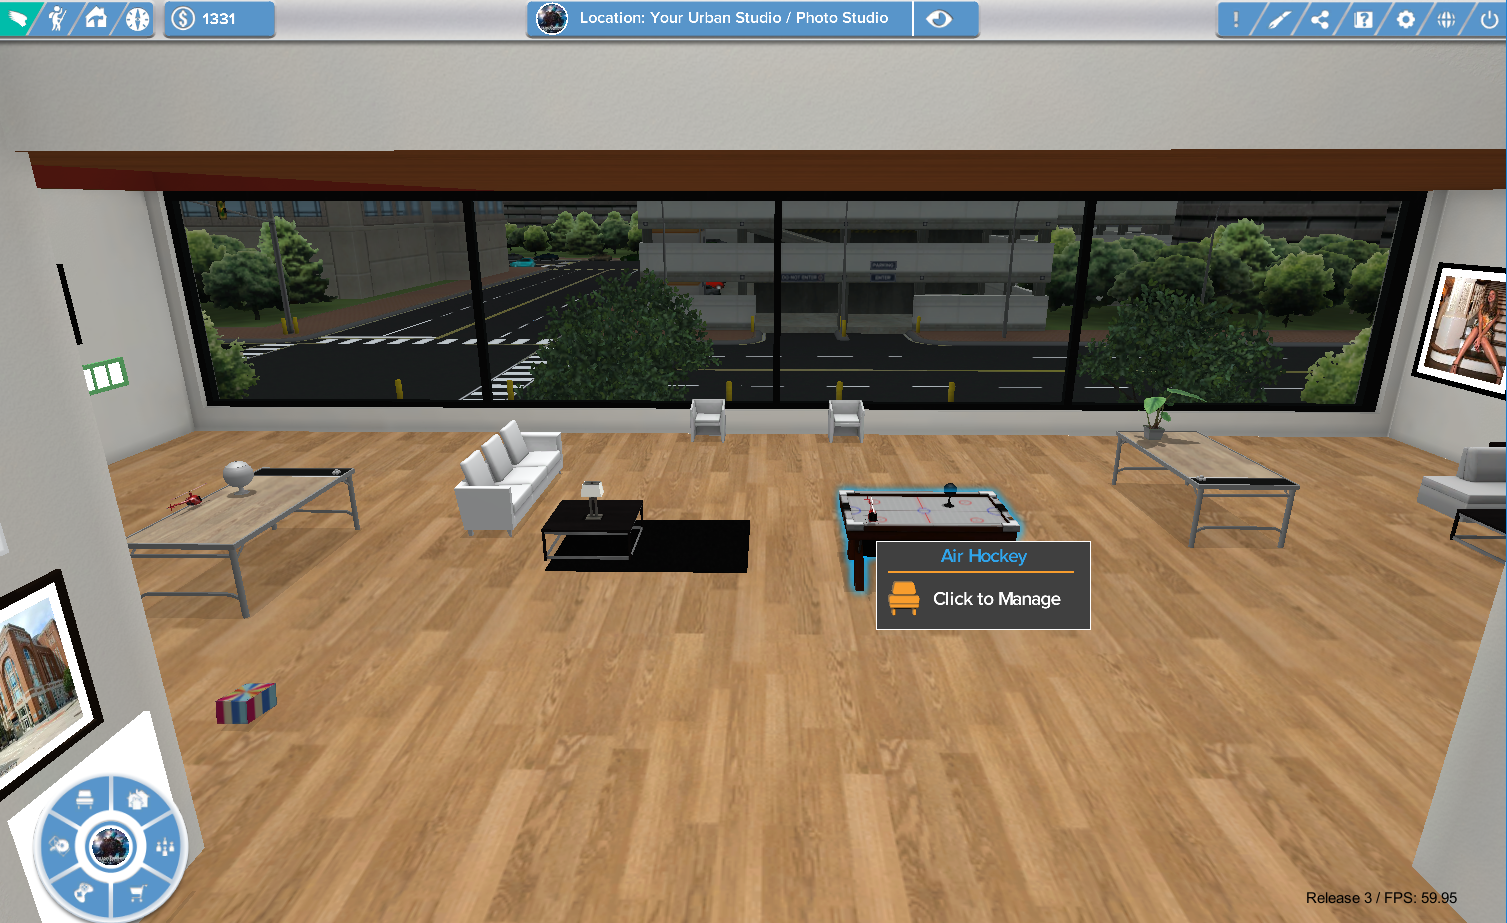 High Perspective View of a Living Space With Fly Mode Enabled